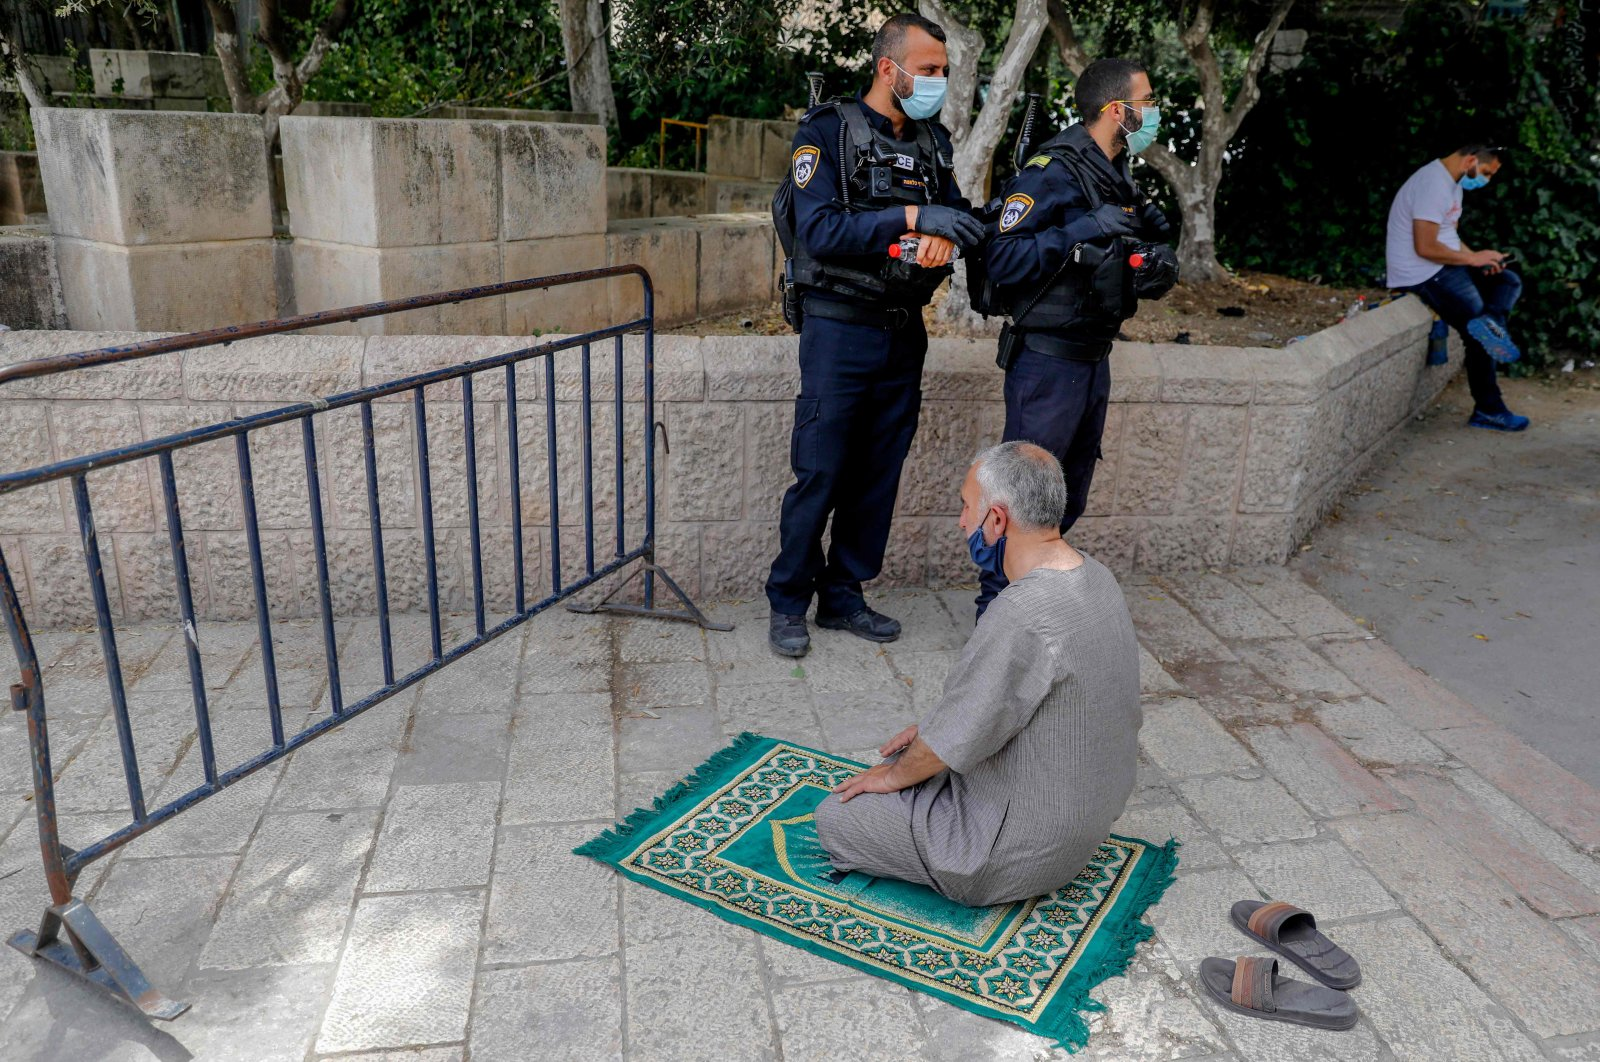 Israeli security forces look on as a Palestinian worshipper performs the Friday prayer during the Muslim holy month of Ramadan, outside the closed Al-Aqsa mosque compound in the Old City of Jerusalem, May 15, 2020. (AFP Photo)